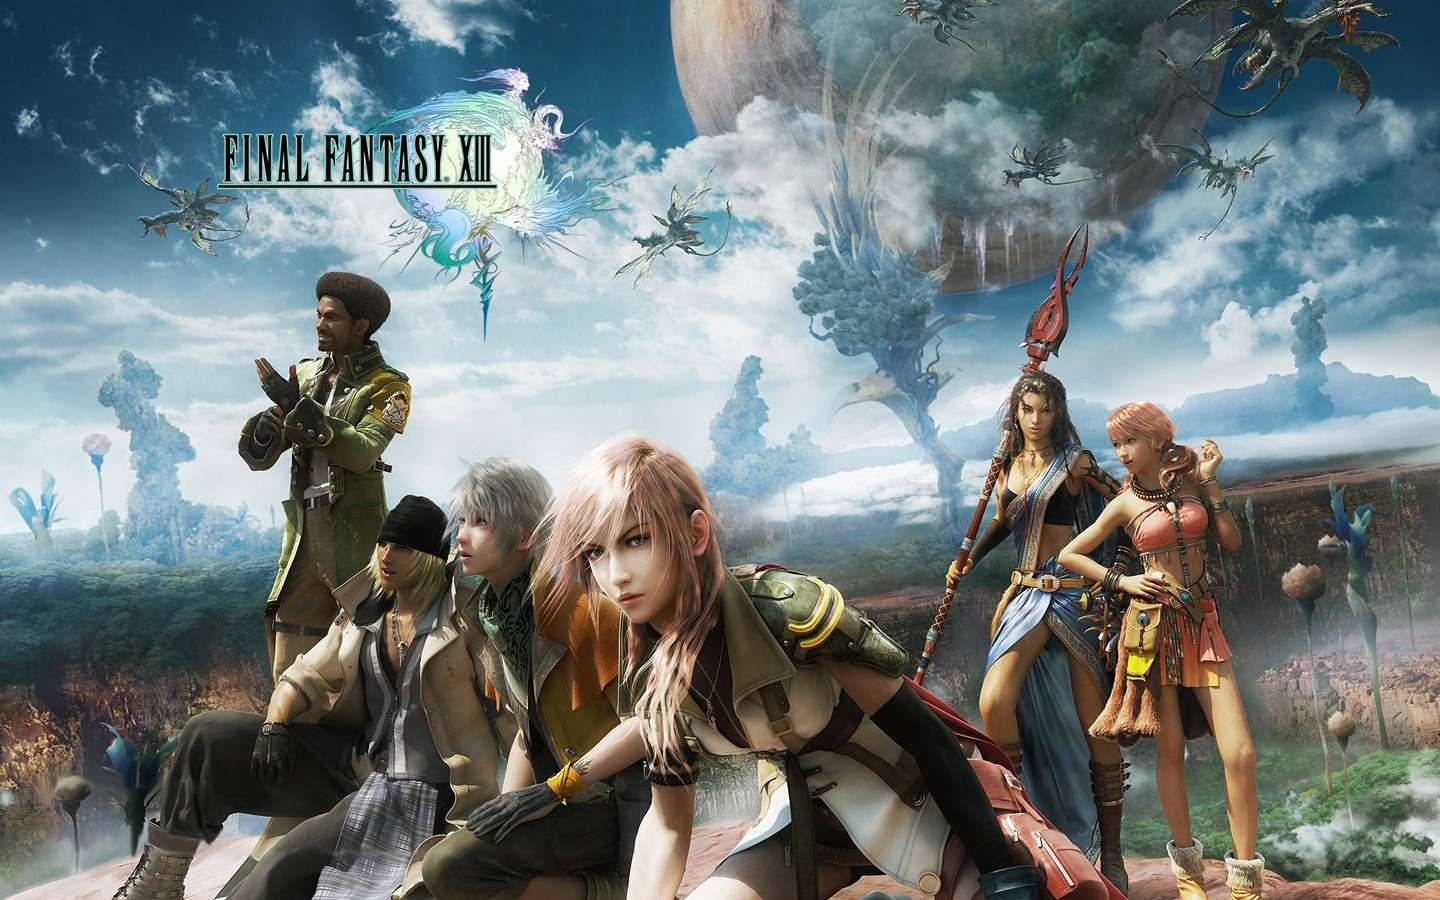 Labels Final Fantasy anime wallpaper Inspirations PS3 1440x900